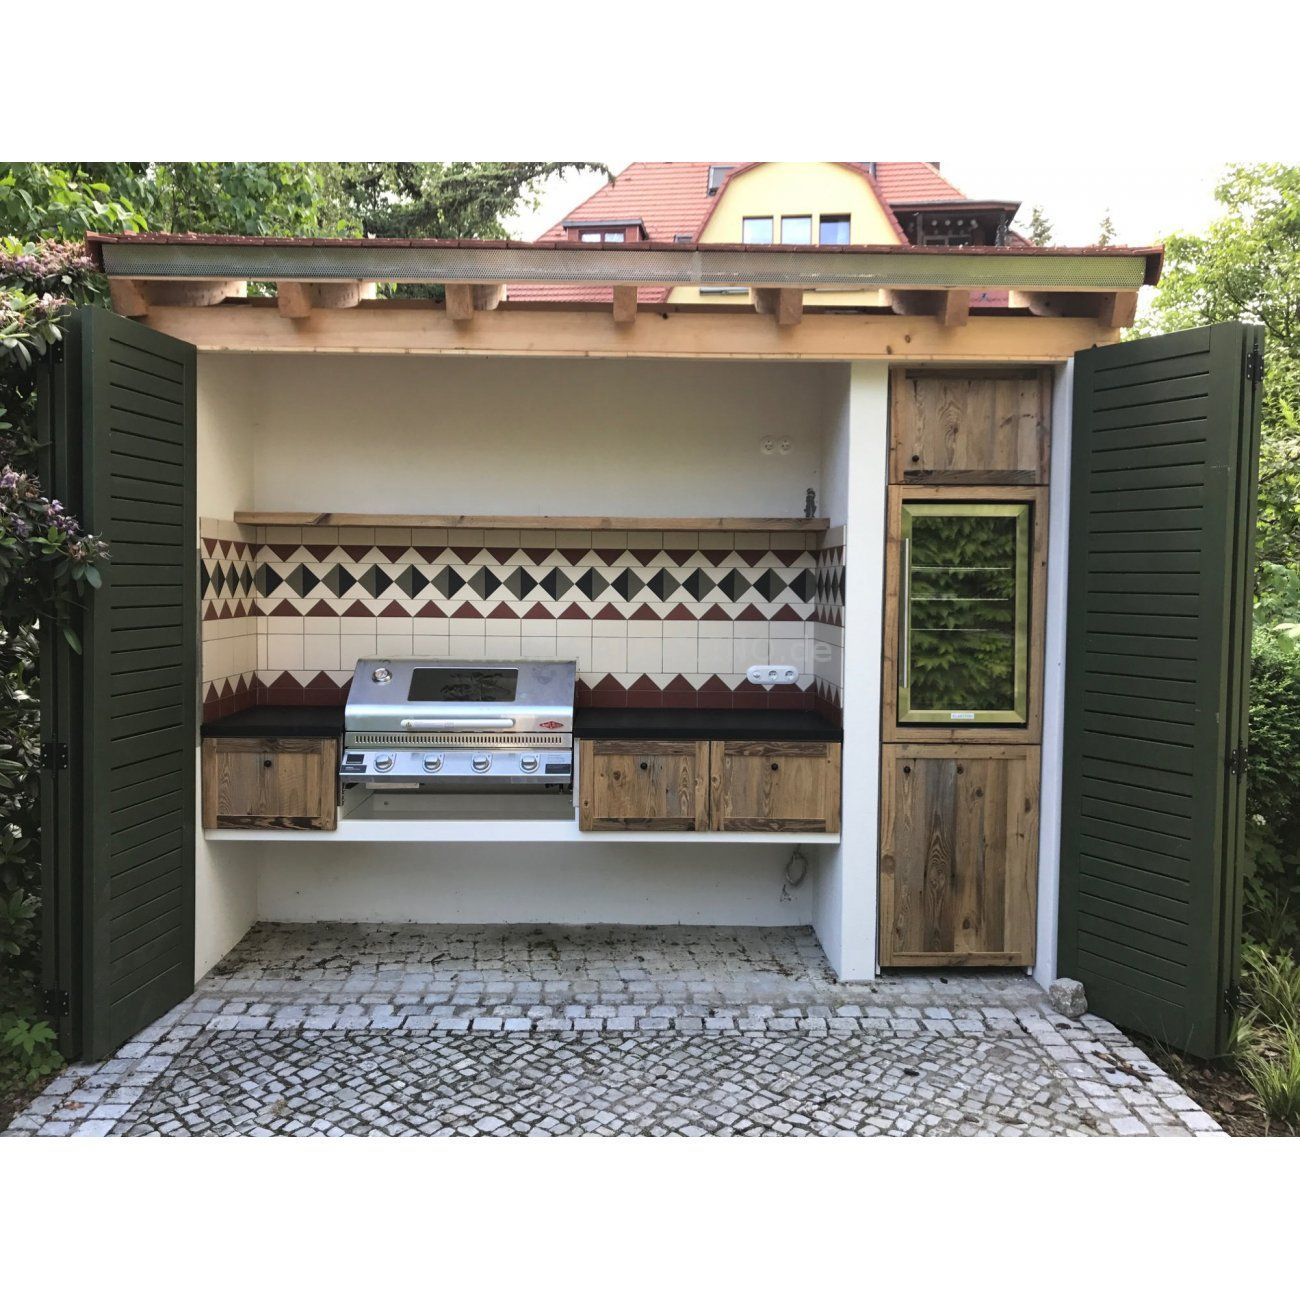 Ländliche Rustikale Außenküche Mit Beefeater Einbaugrill Und Überdachung Rustic Outdoor Kitchen With Be Eingebauter Grill Outdoor Grill Küche Outdoor Küche